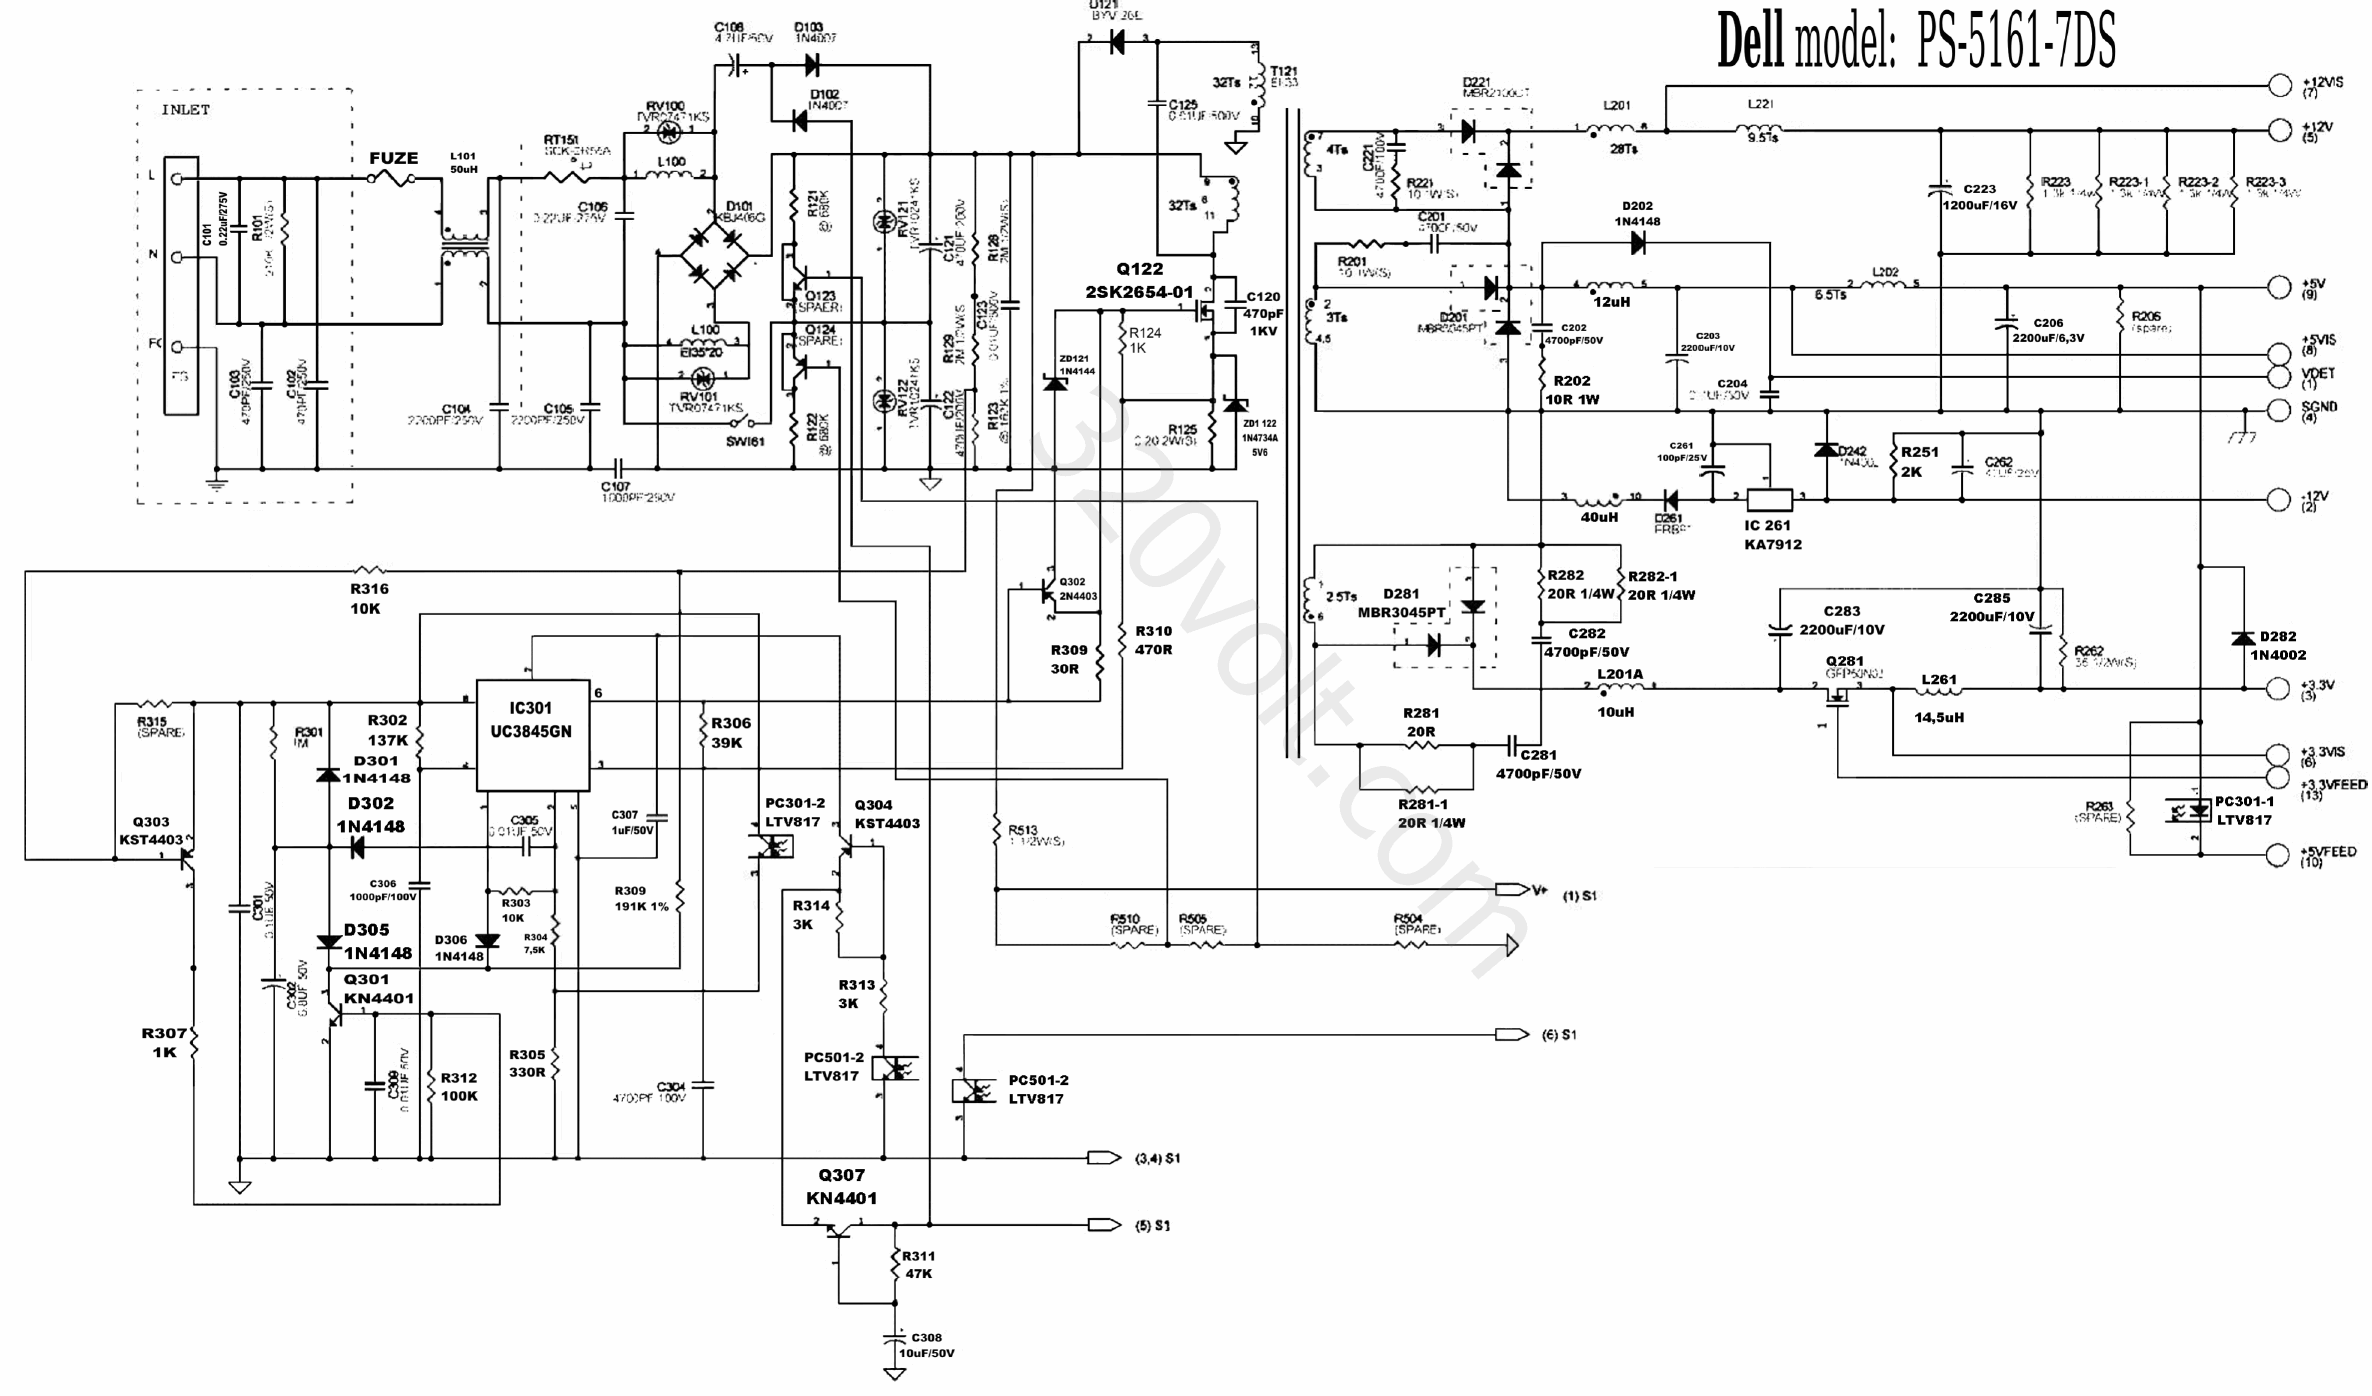 S 360 12 Power Supply Wiring Diagram : 36 Wiring Diagram